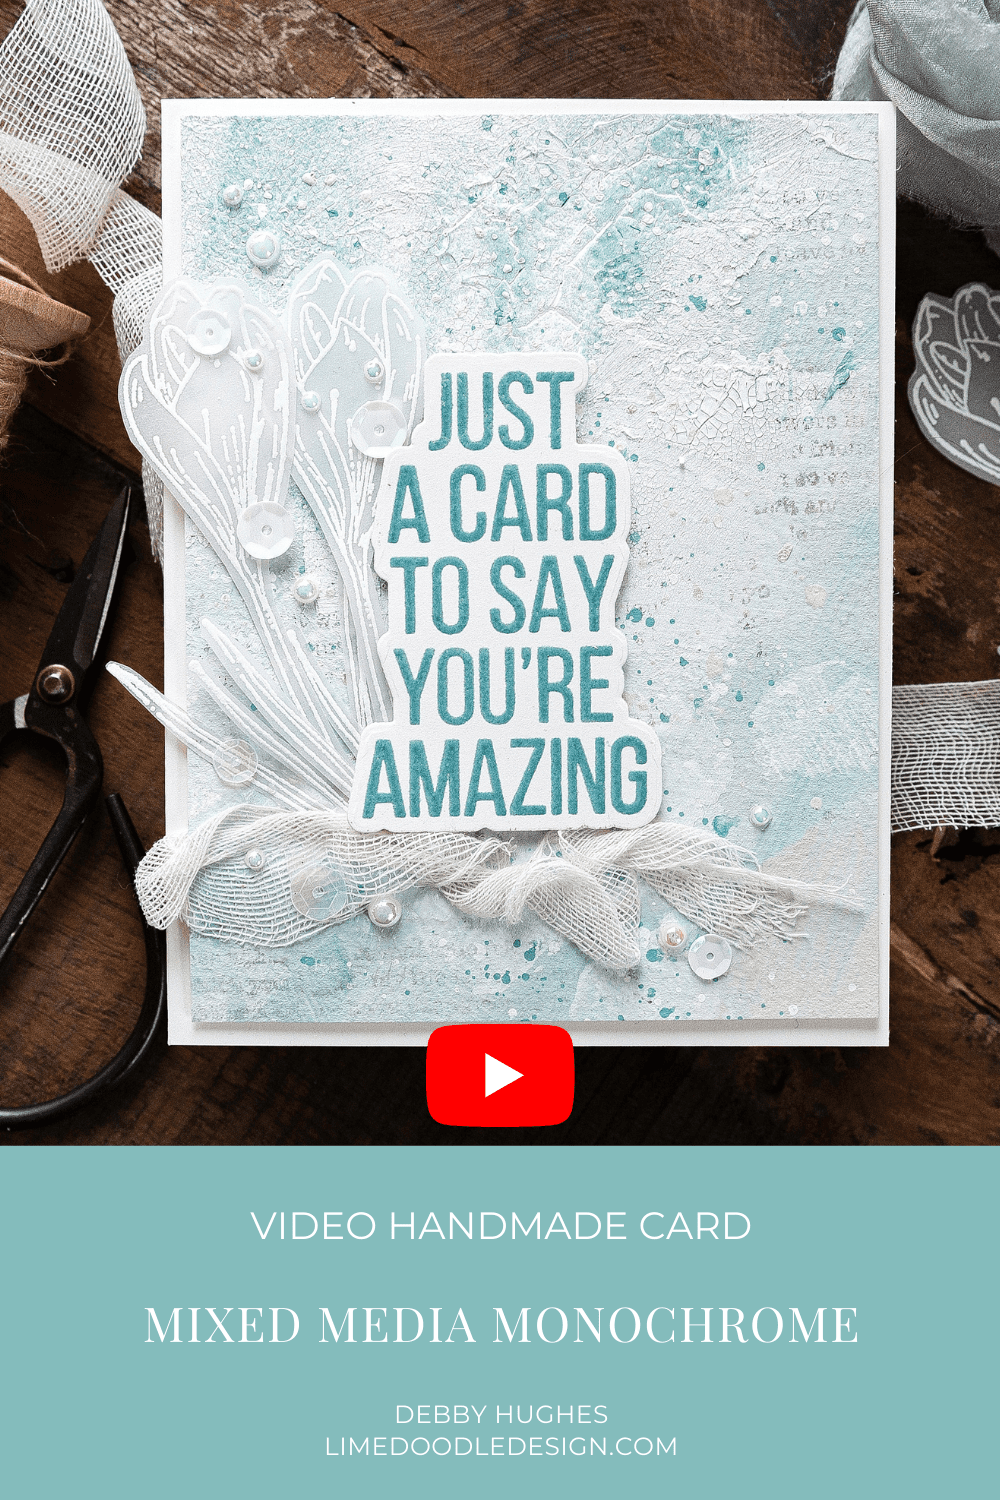 Video tutorial - mixed media handmade card by Debby Hughes using supplies from Simon Says Stamp #handmadecards #cardmaking #cardmakingideas #cardmakingtechniques  #cardmakingtutorials #handmadecardideas #simonsaysstamp